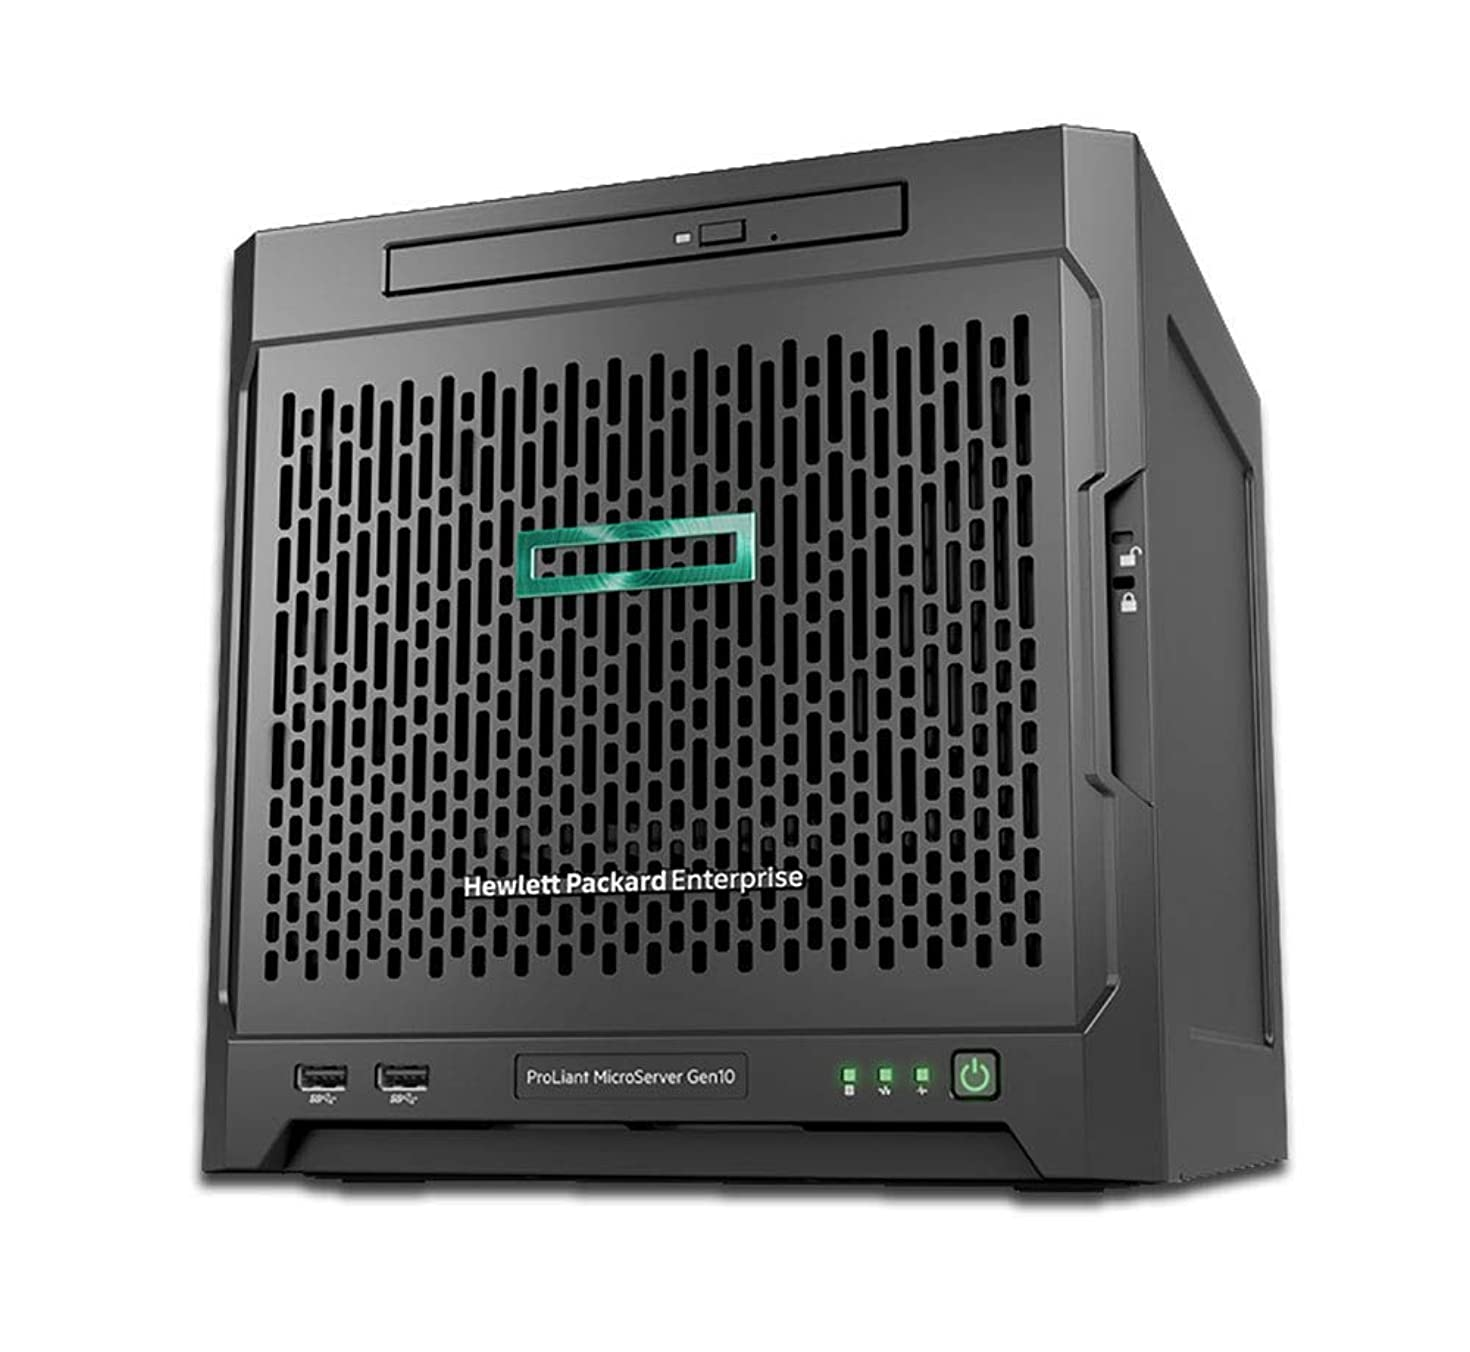 HP ProLiant MicroServer Gen10 NAS Server for Business, AMD Opteron X3421, 32GB RAM, 16TB Storage, RAID, FreeNAS OS, 3 Year Warranty